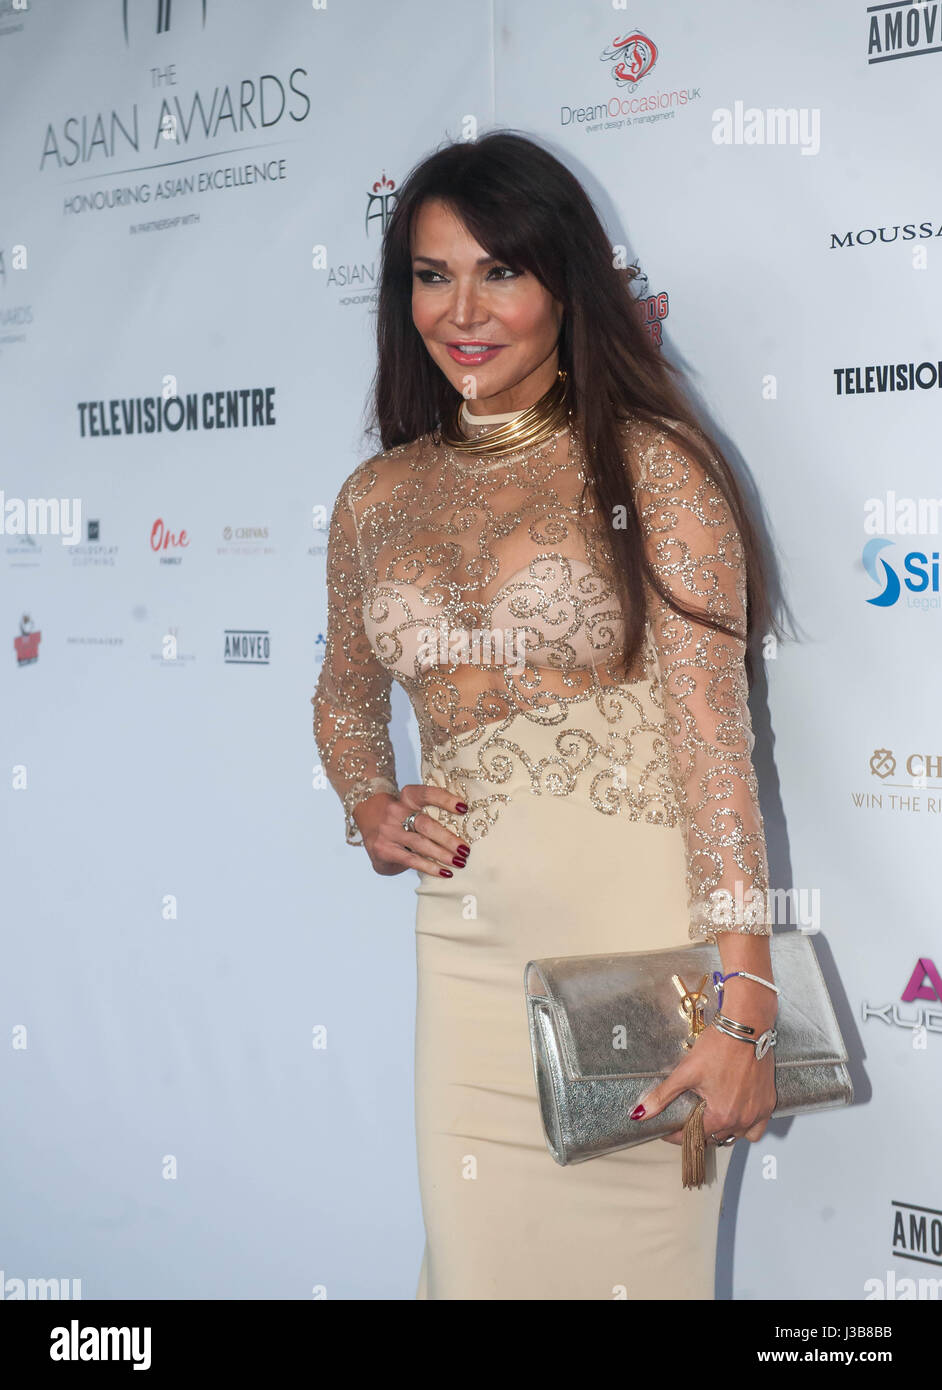 london, united kingdom. 5th may 2017. lizzie cundy attends the 7th